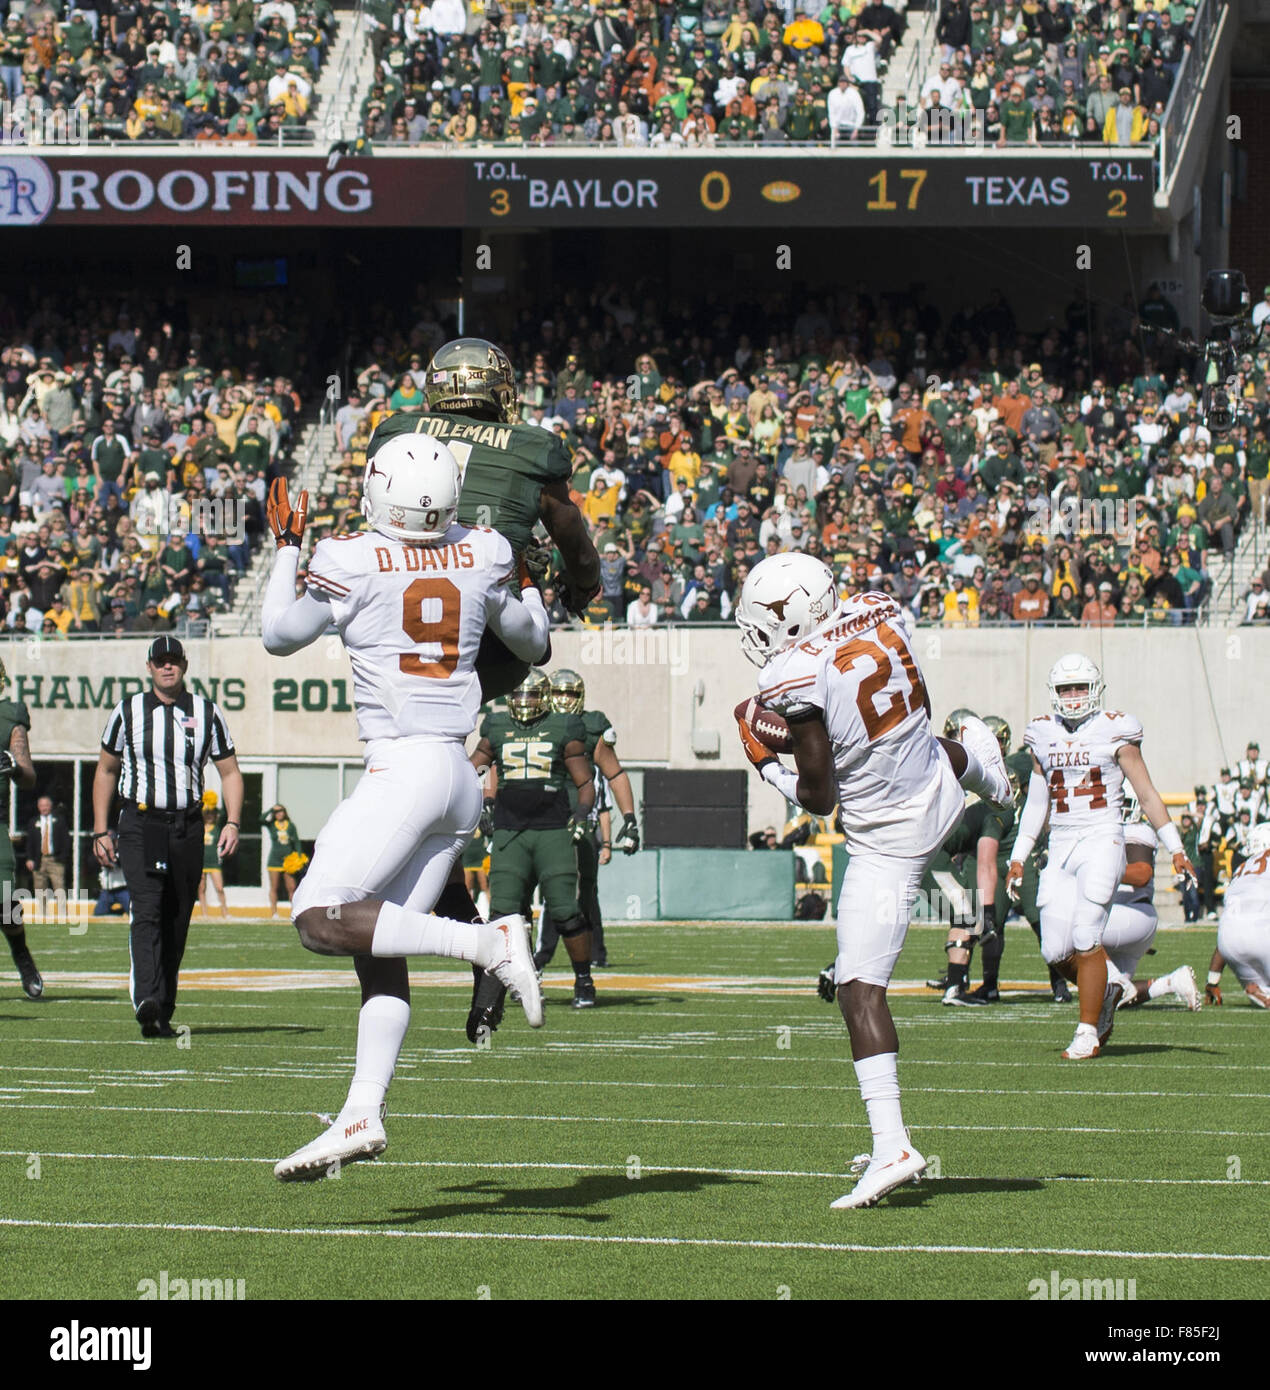 Waco, Texas, US. 5th Dec, 2015. Intended pass for Baylor WR #(1) Corey Coleman is picked off by Longhorn CB #(21) Stock Photo